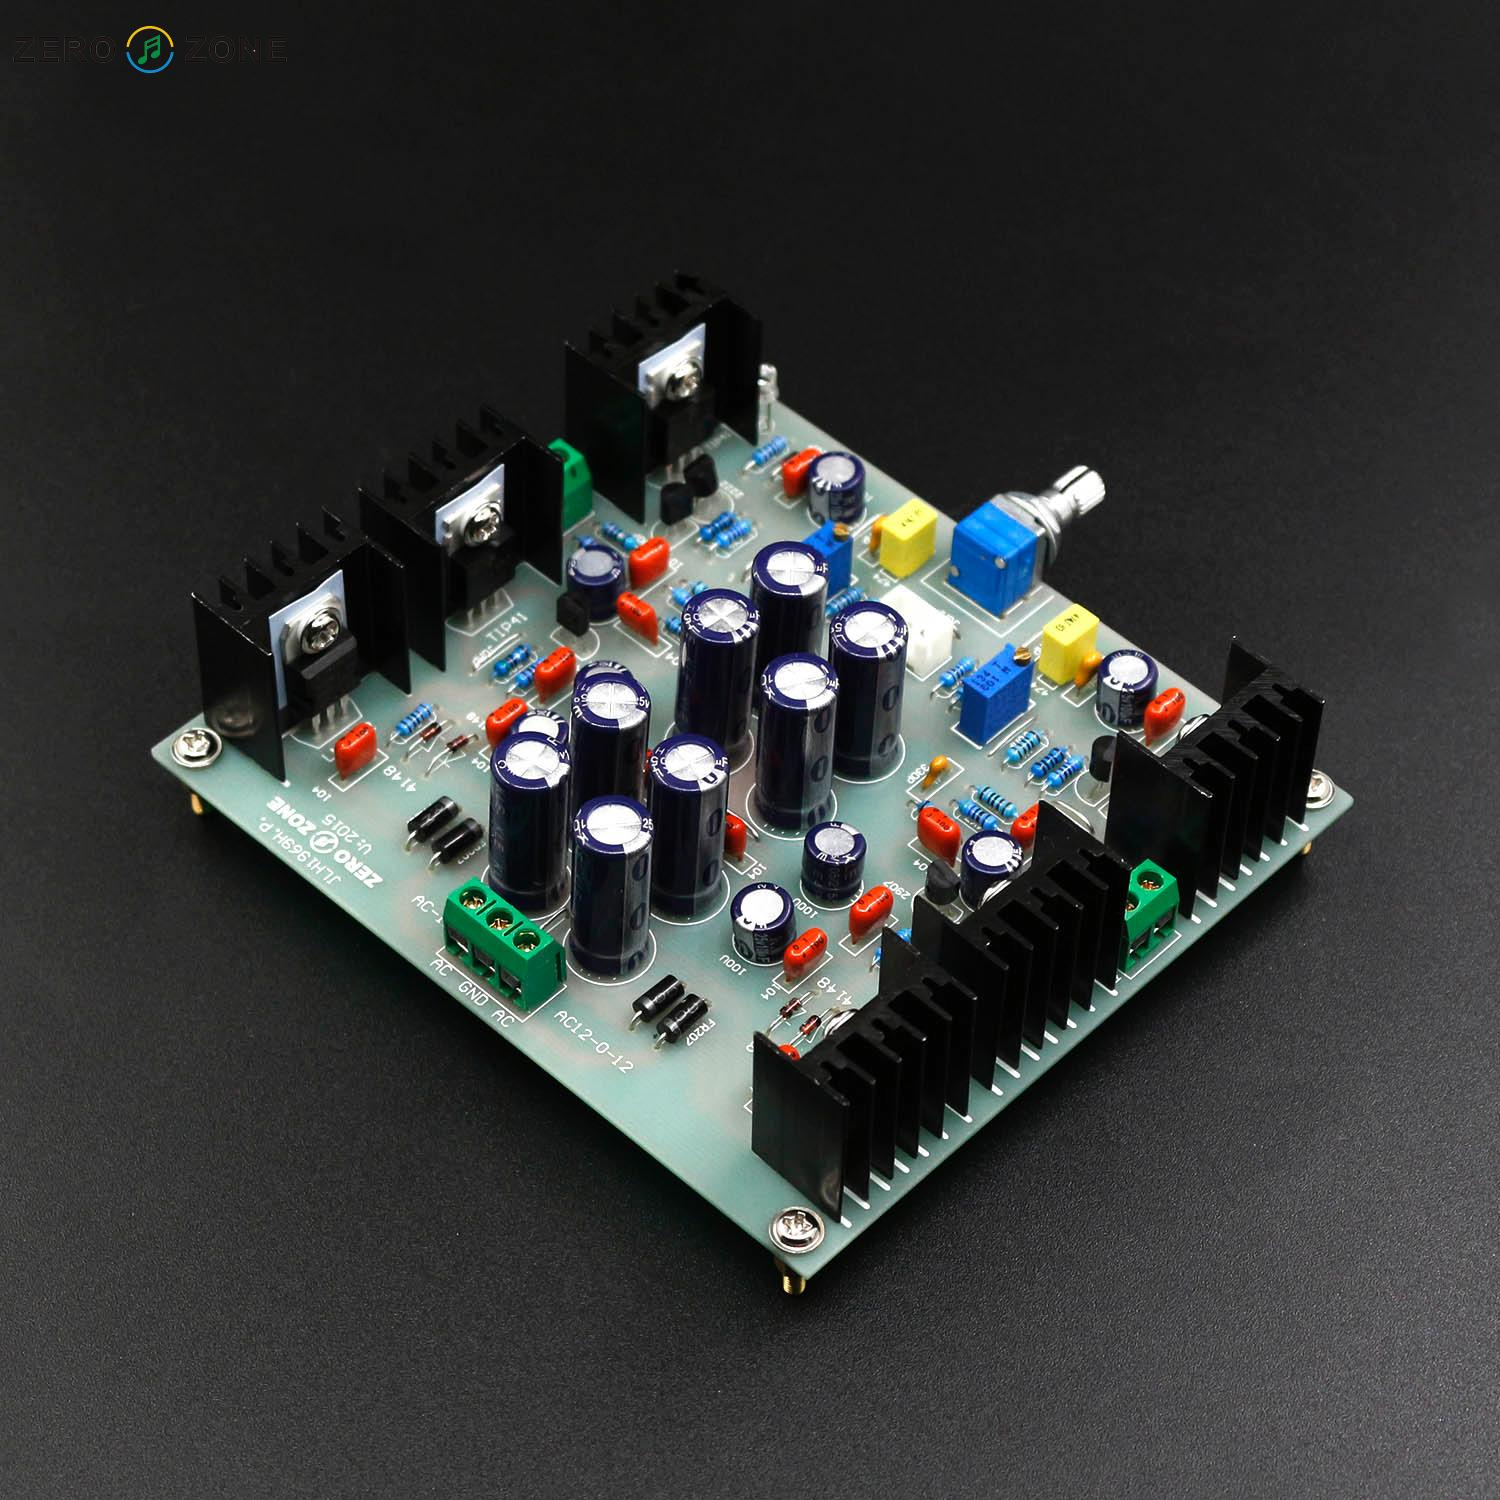 Zerozone Jlh Hood1969 Class A Headphone Amplifier Kit Pre Diy Base On Lehmann Amp Circuit Note Kitneed To Solder All The Components By Yourself Board Is Assembled